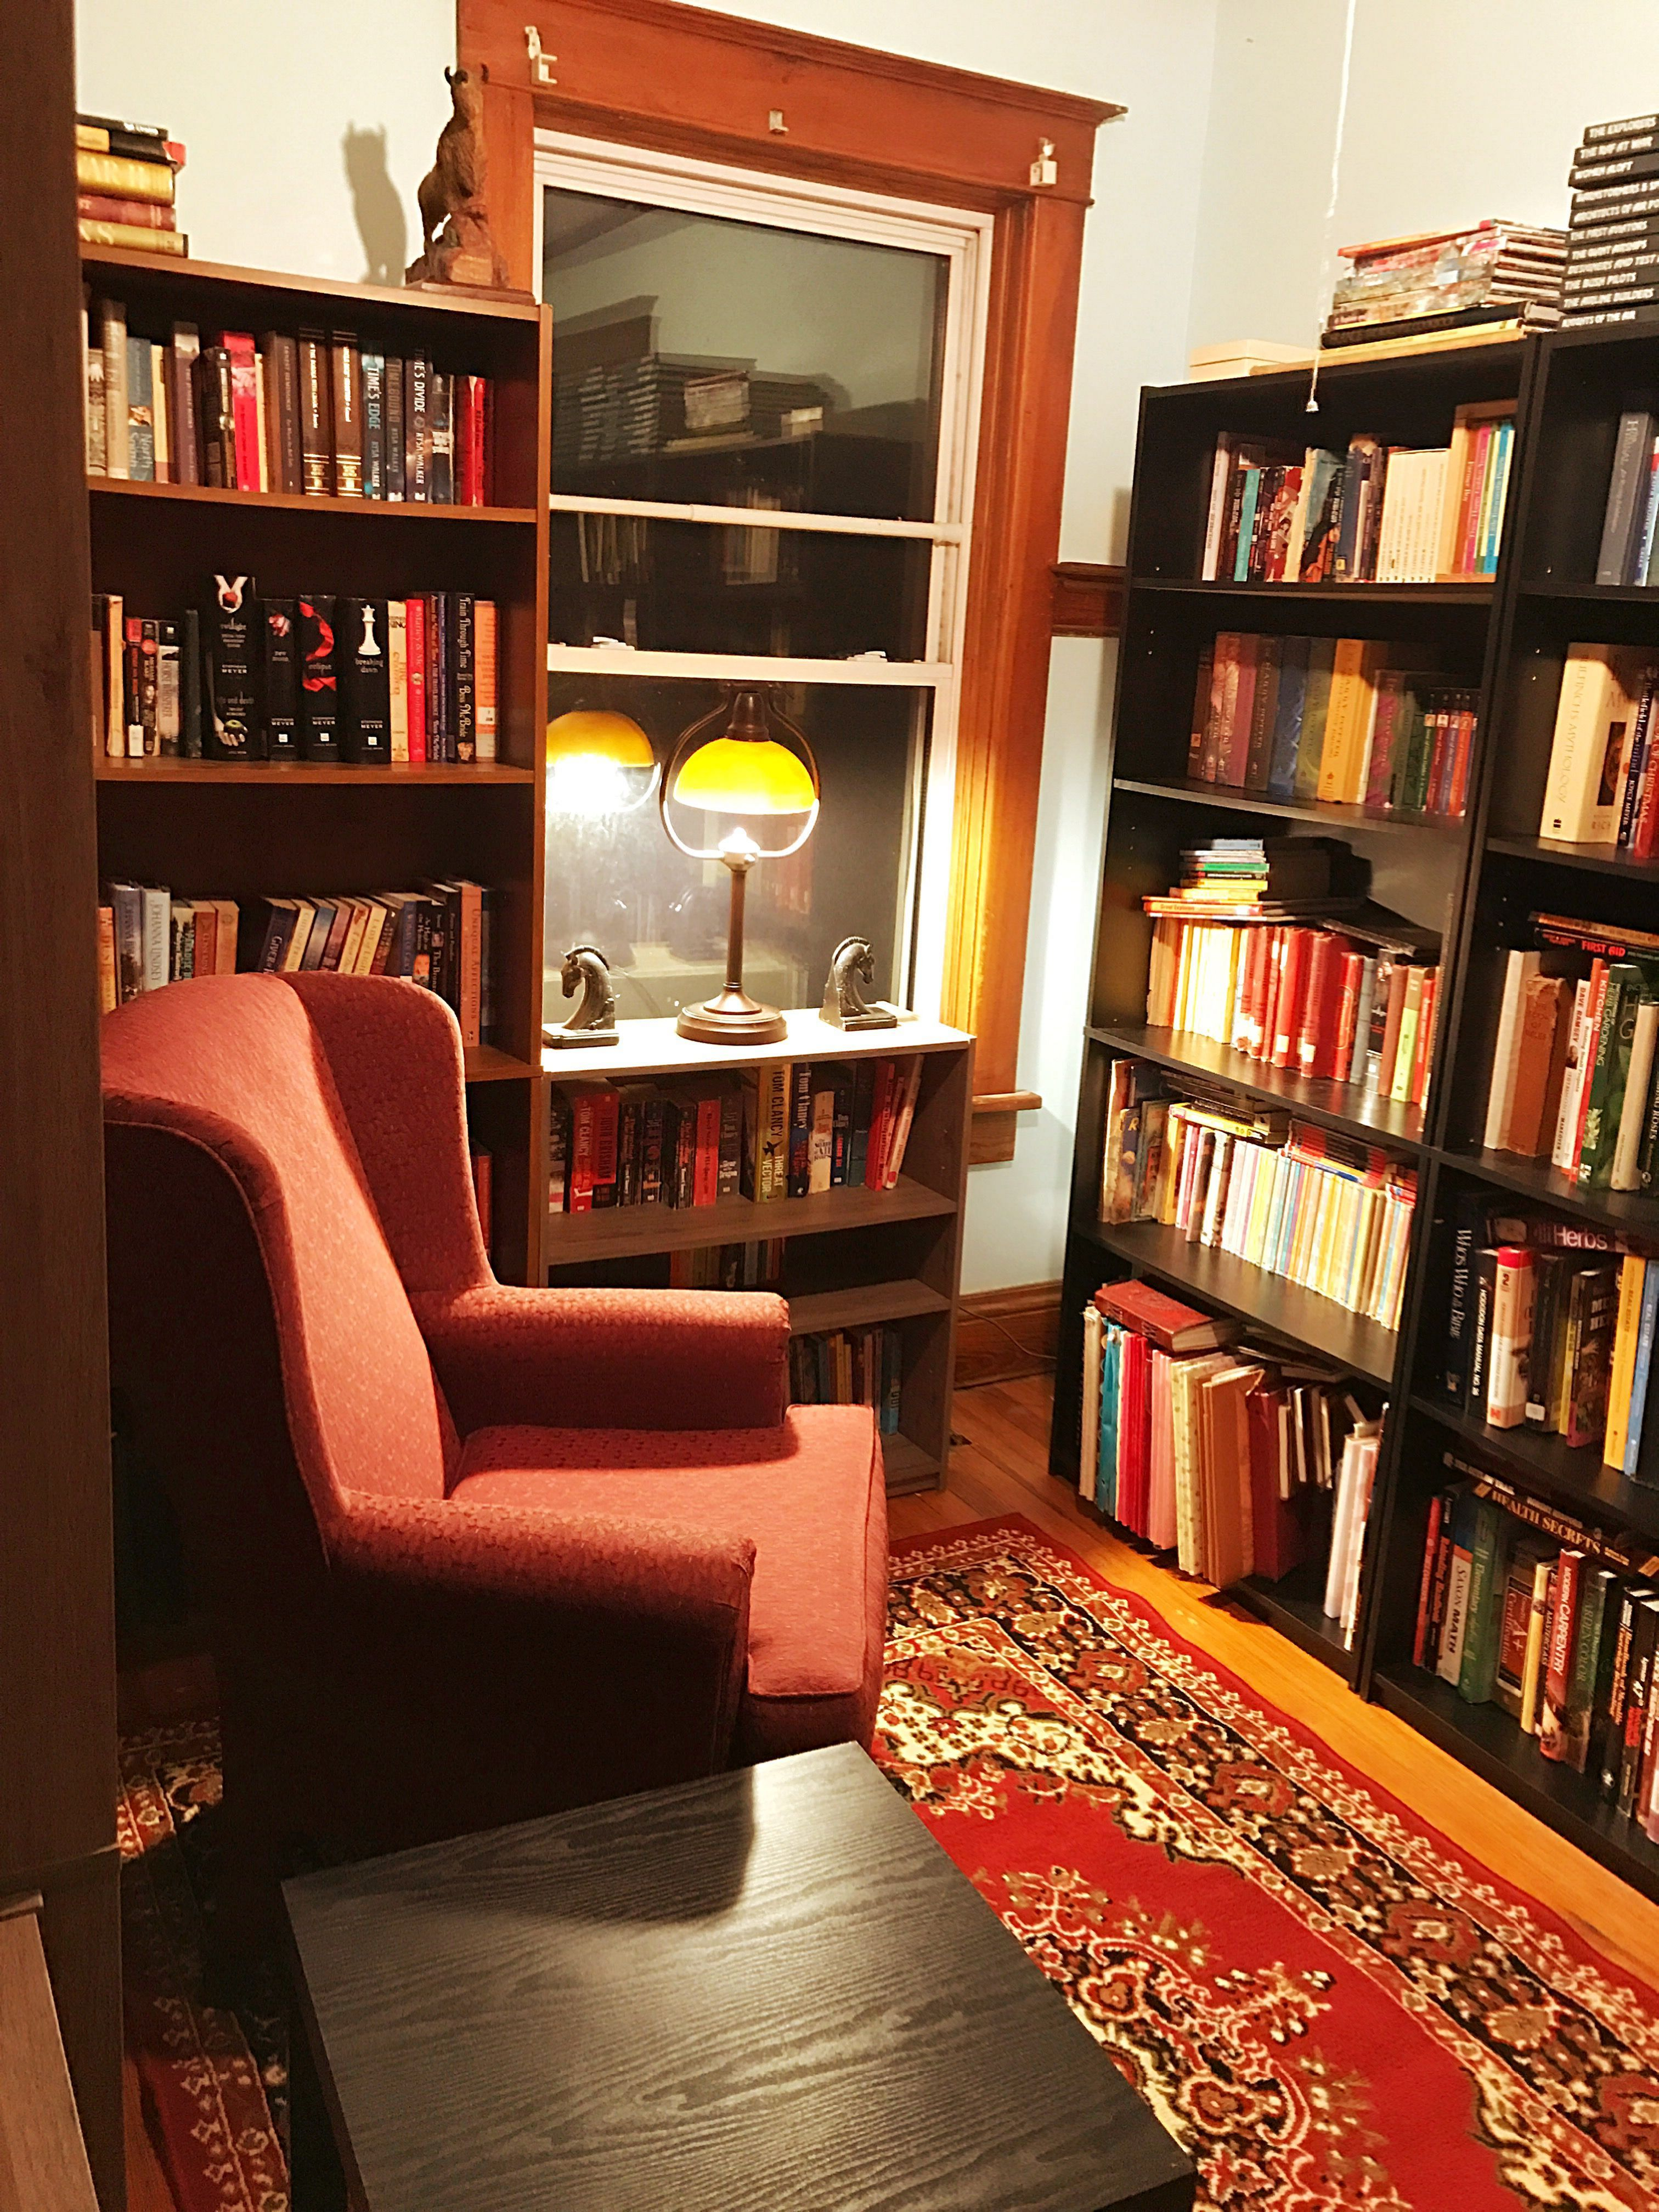 25 Cozy Small Home Library Design Ideas That Will Blow Your Mind Small Home Libraries Home Library Design Home Library Rooms